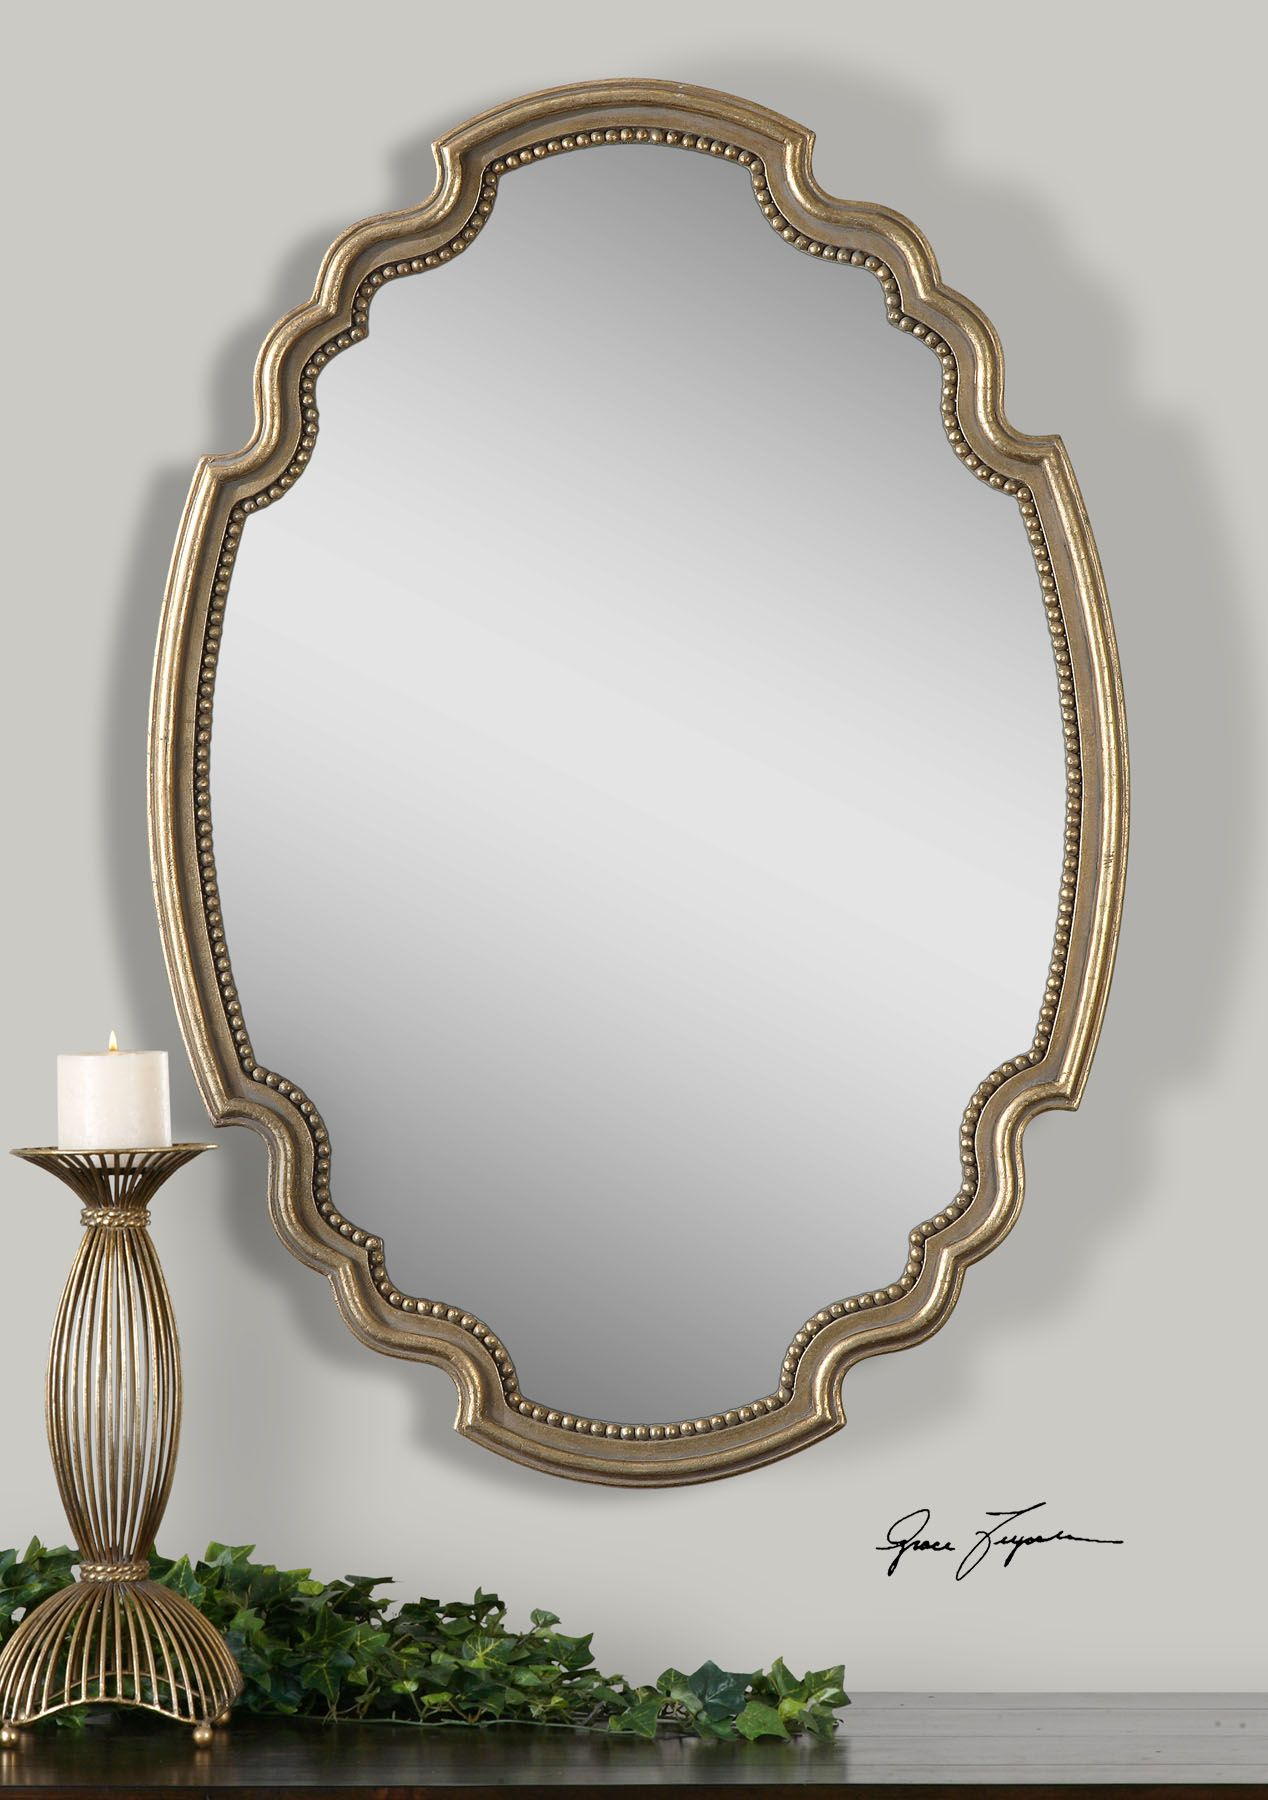 Uttermost terelle oval gold mirror english country pinterest terelle wall mirror features a decorative oval shape with delicate beading detail around inner edge frame is finished in lightly antiqued gold leaf with a amipublicfo Choice Image